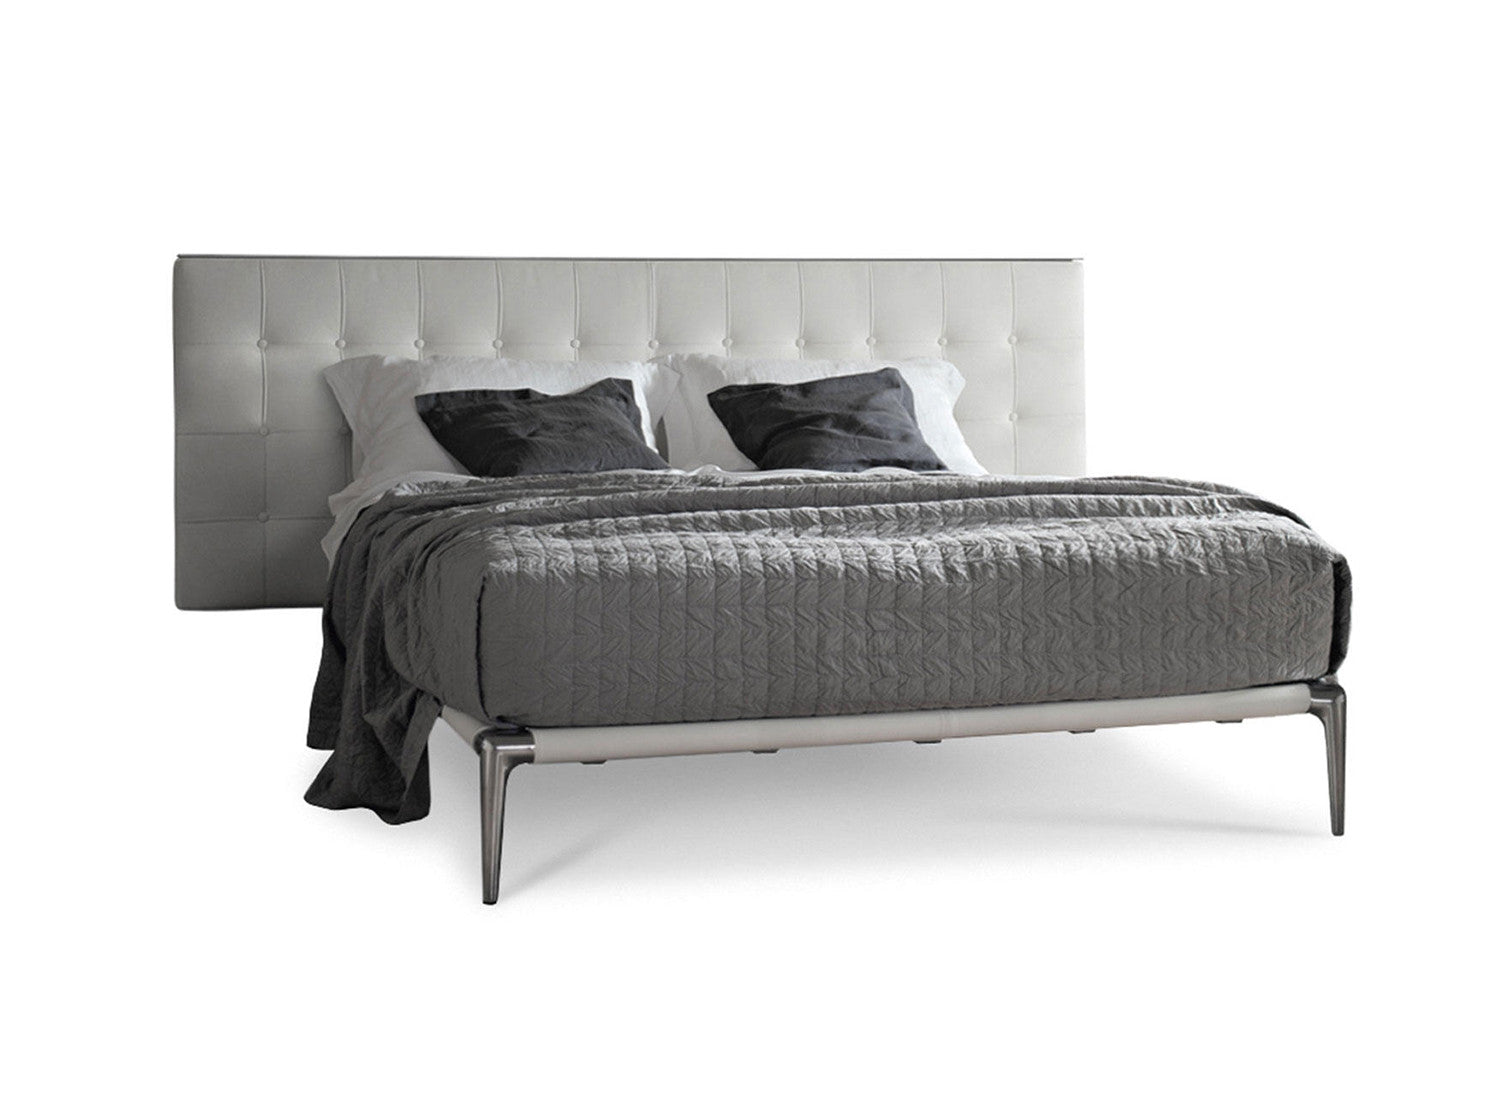 L26 Volage Bed